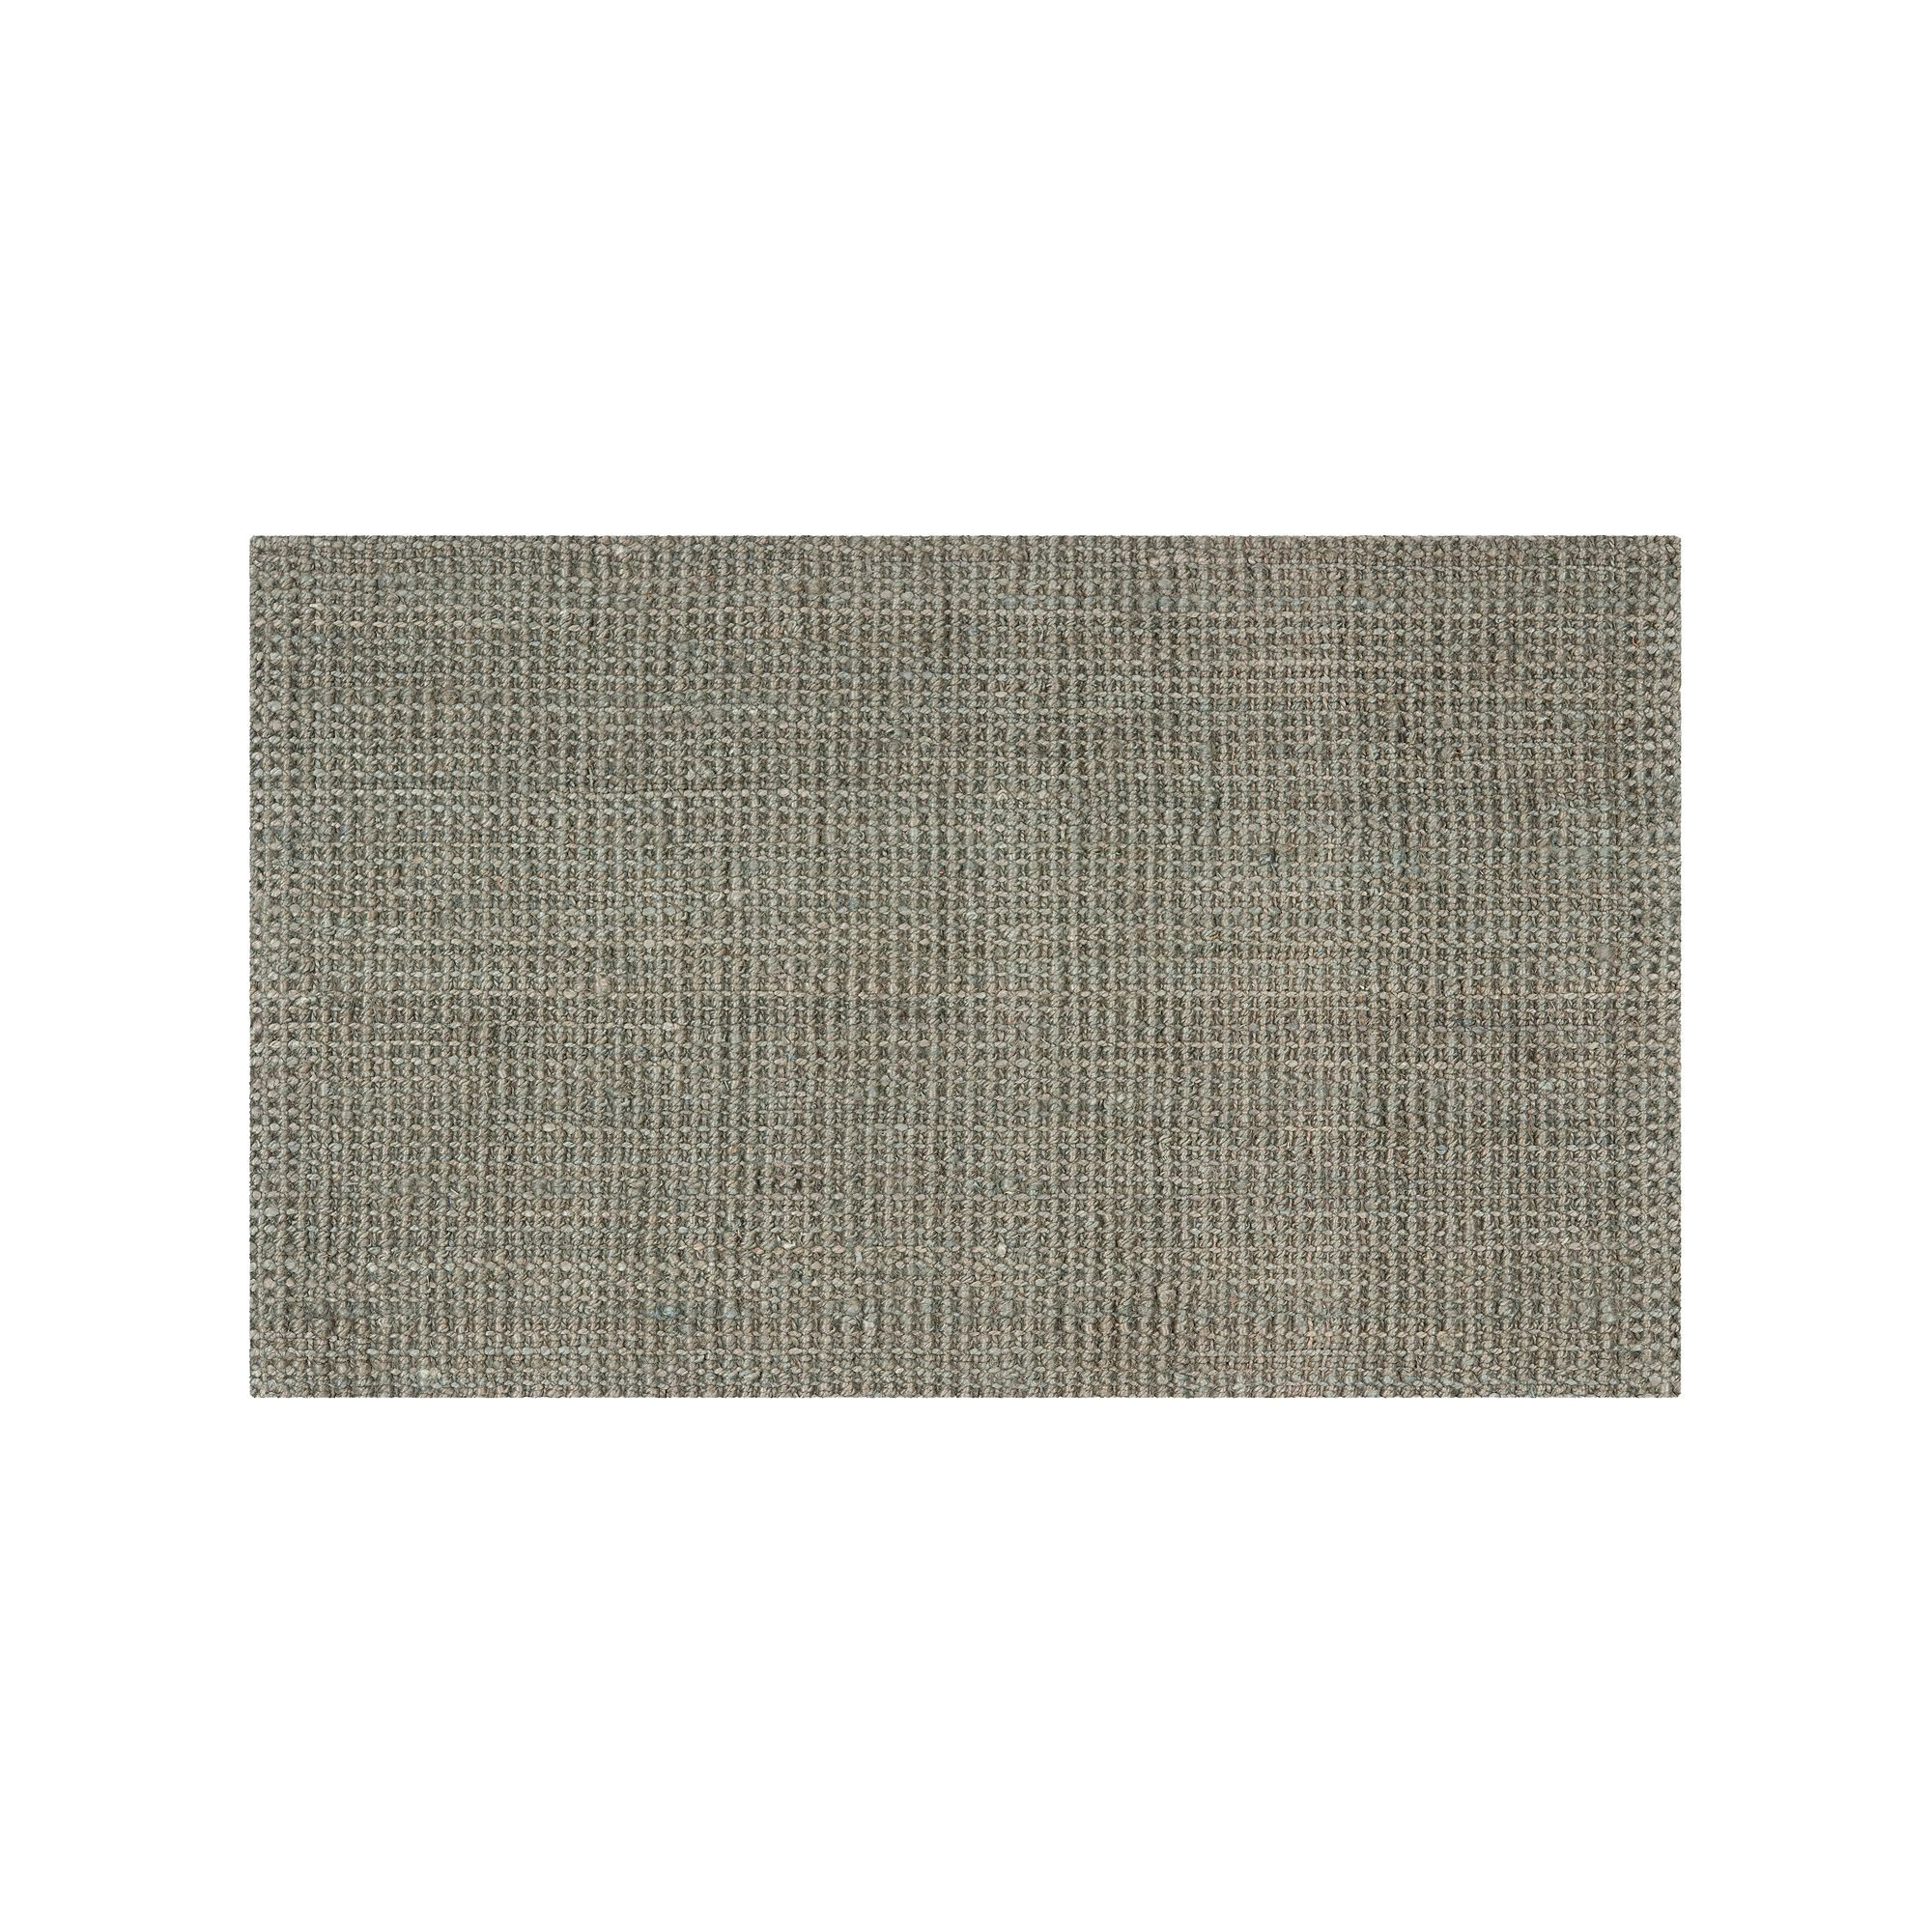 Area Rugs Home Goods: Artisan Deluxe Area Rug Home Goods